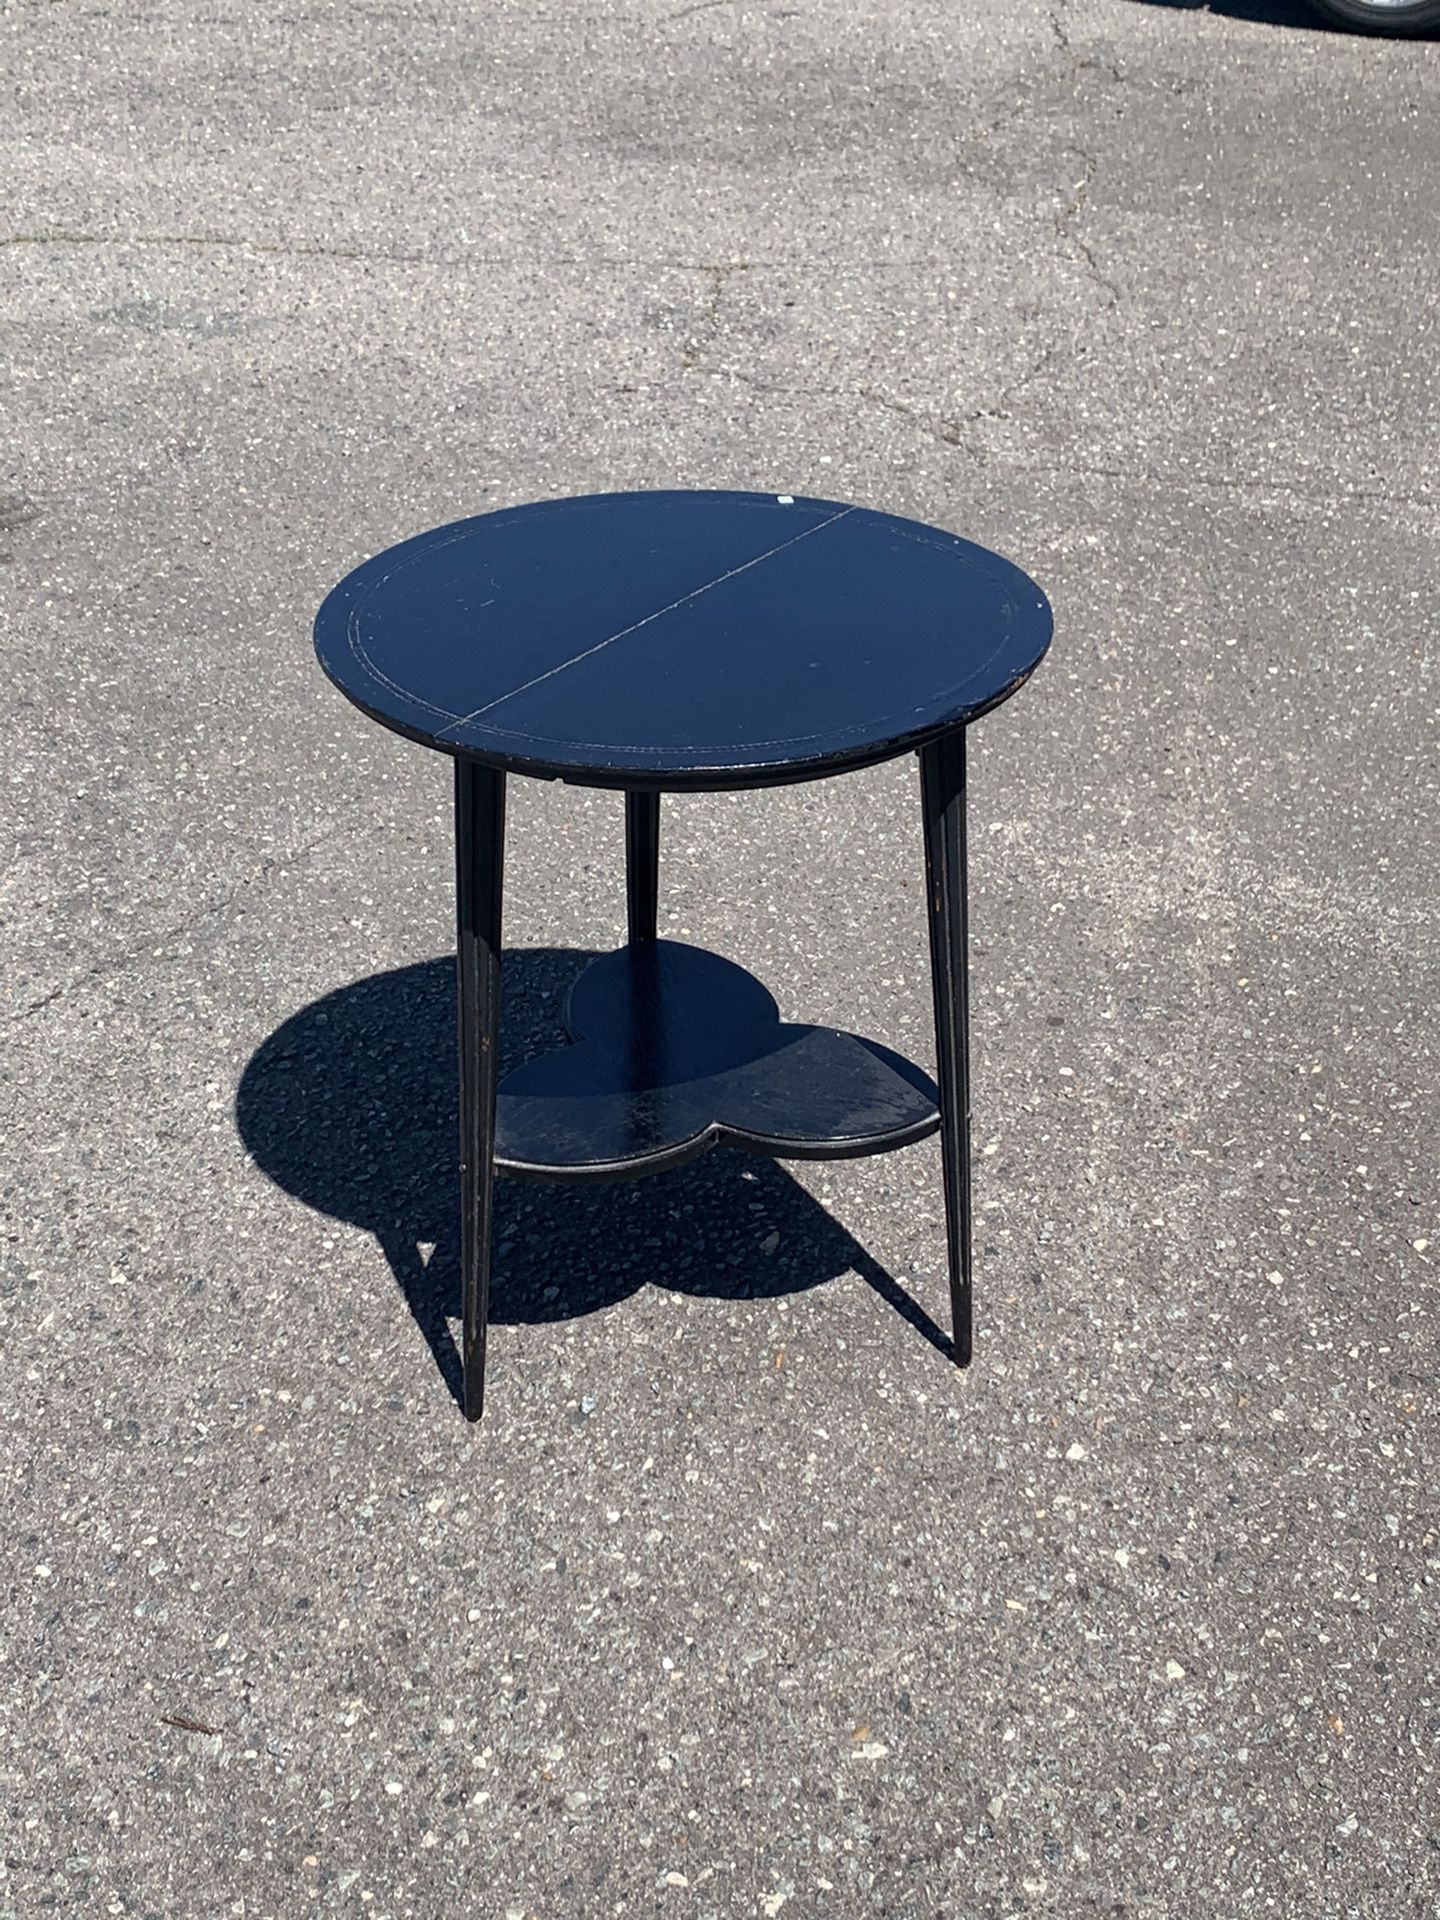 Wooden Two Tier, Sturdy Side Table w/Tapered, Reeded Legs